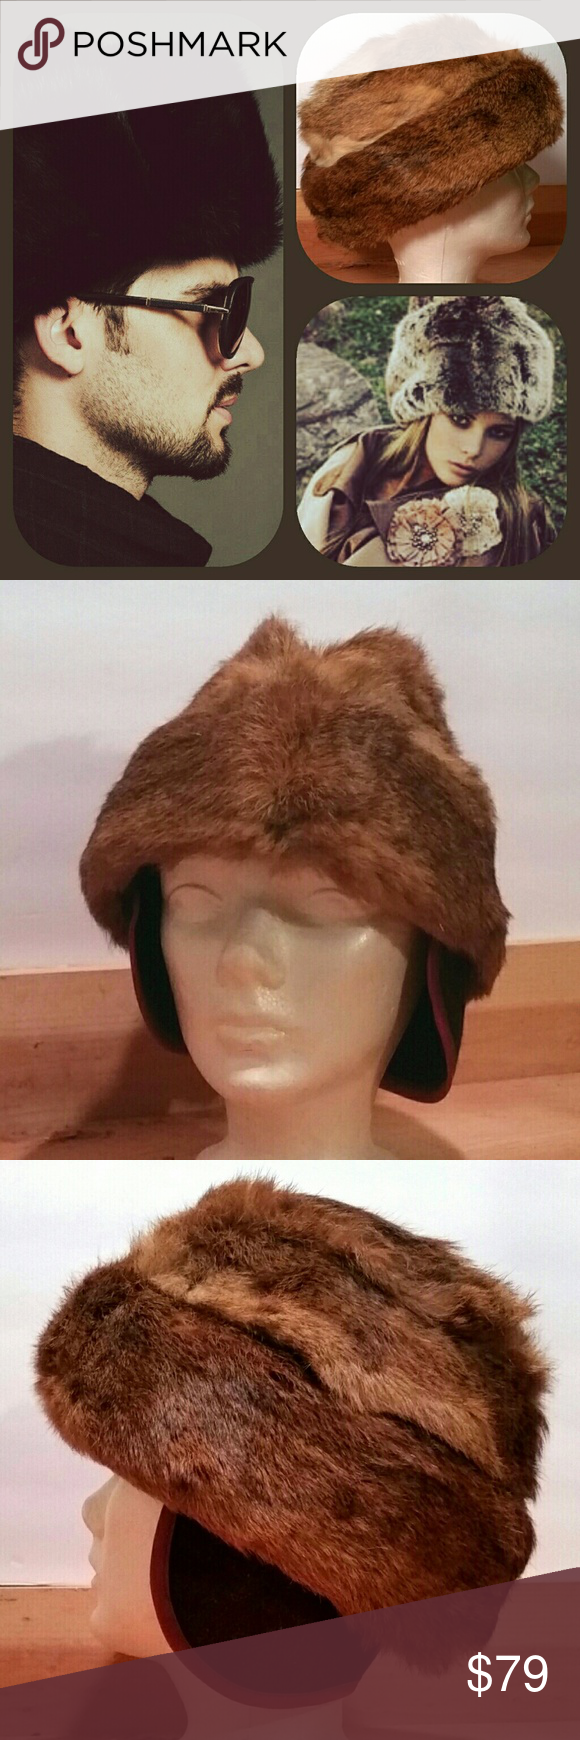 e24ef2a35e844d Vintage Cossack Hat Rabbit Fur France Made in USA Unisex Hat Softest rabbit  fur hat.